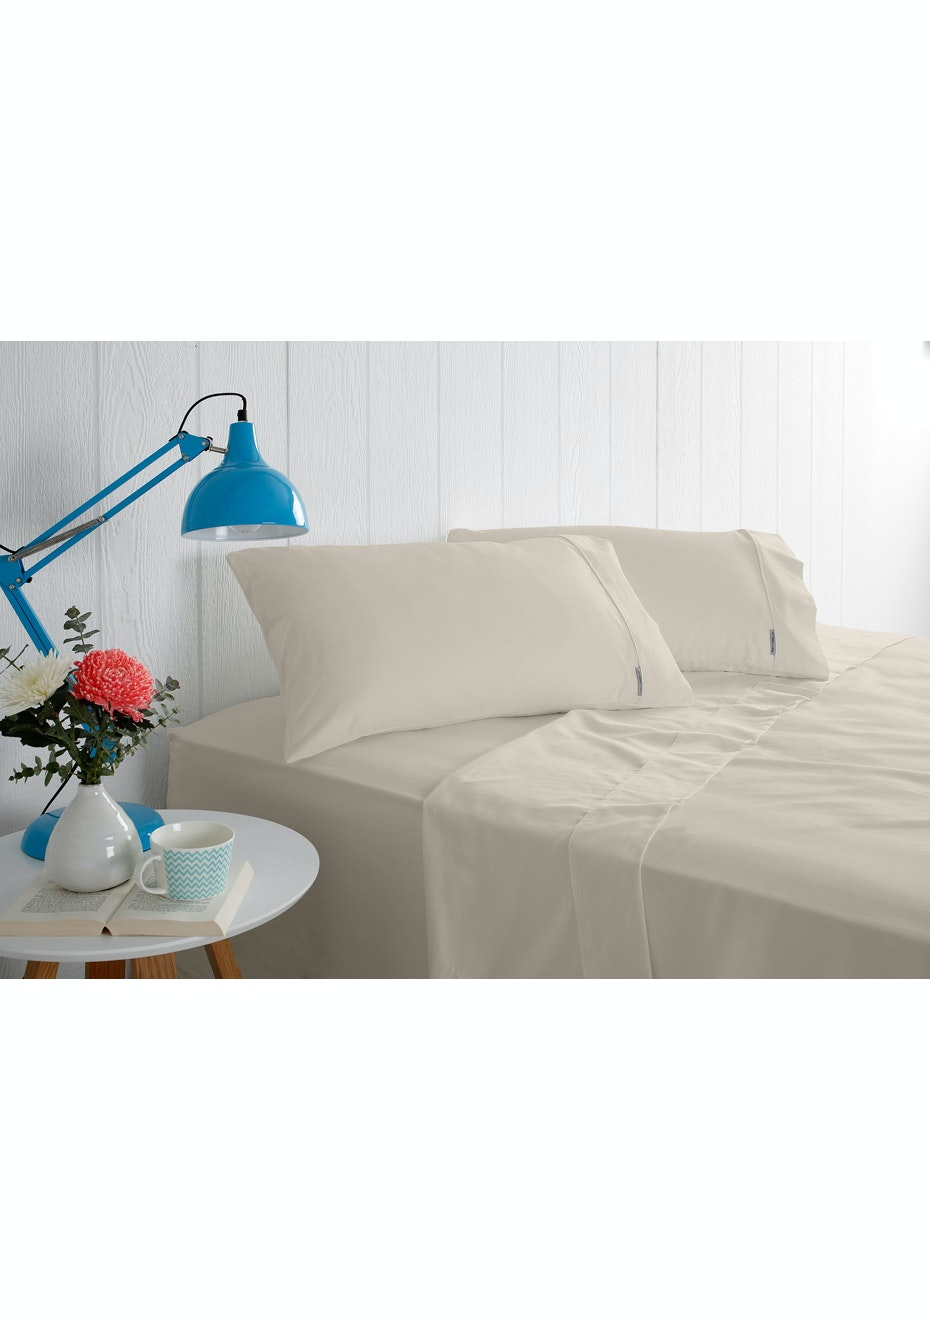 Odyssey Living 1000 Thread Count – Cotton Rich Sheet Sets -Linen - King Bed